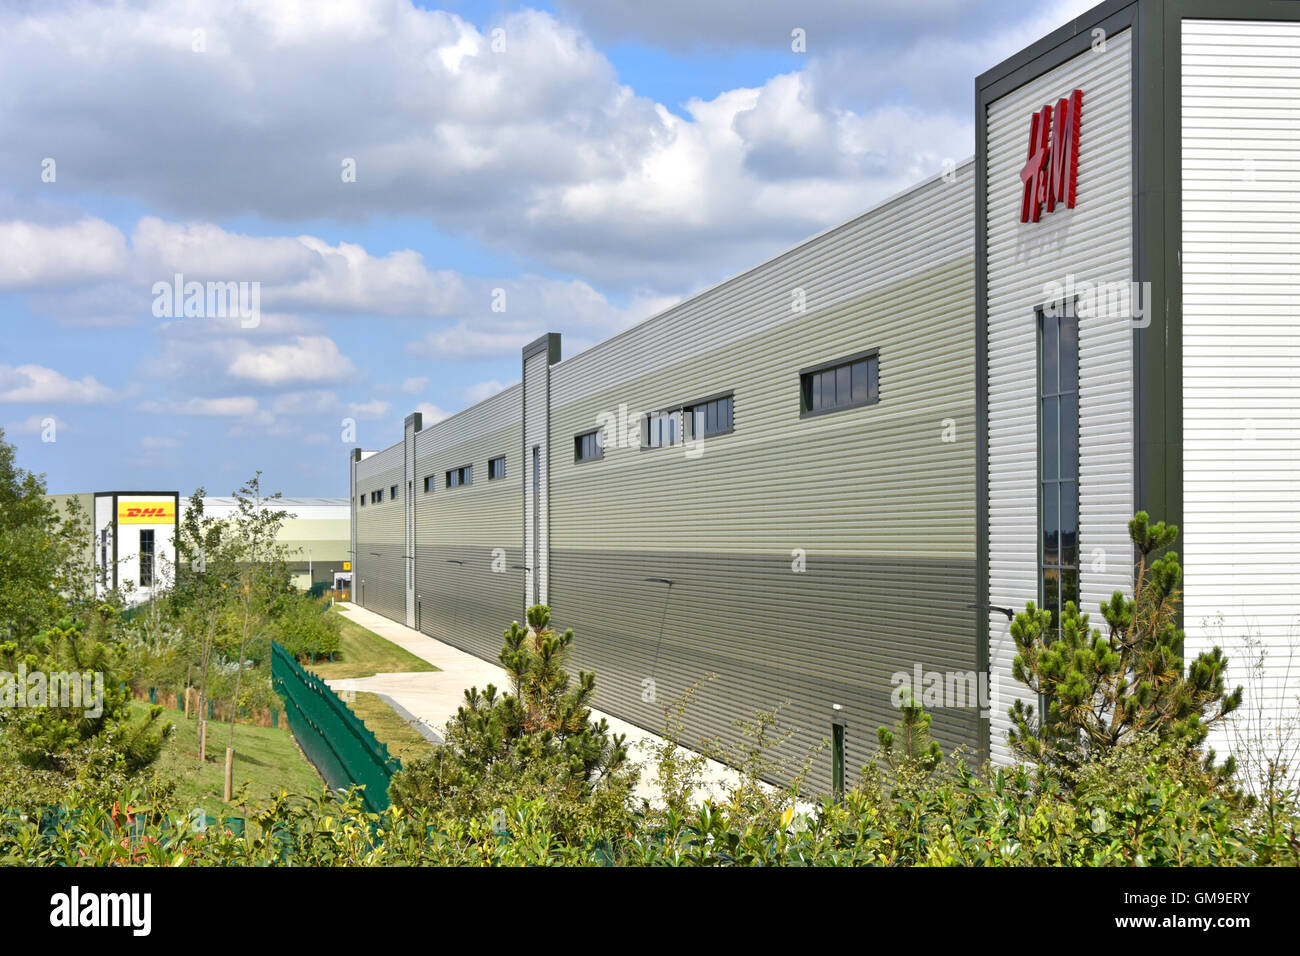 New H&M clothing business distribution warehouse on UK Rugby Gateway development centrally located in middle - Stock Image